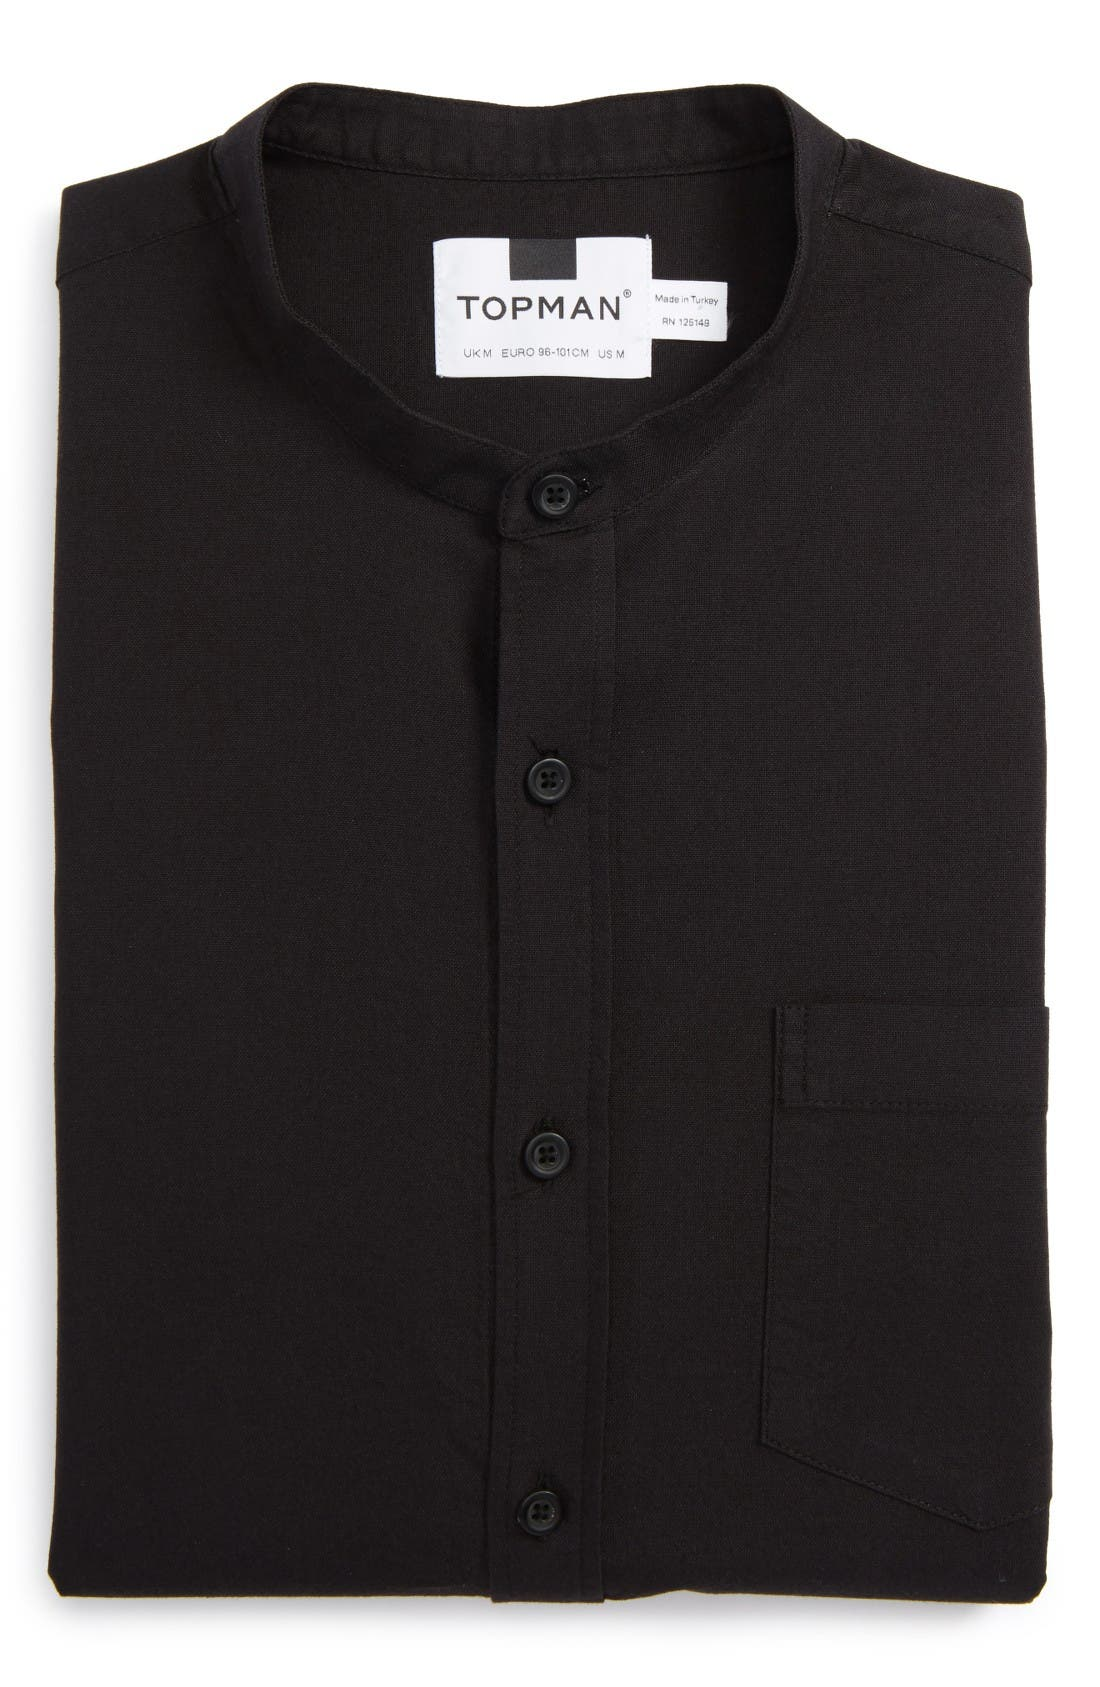 Topman Band Collar Shirt